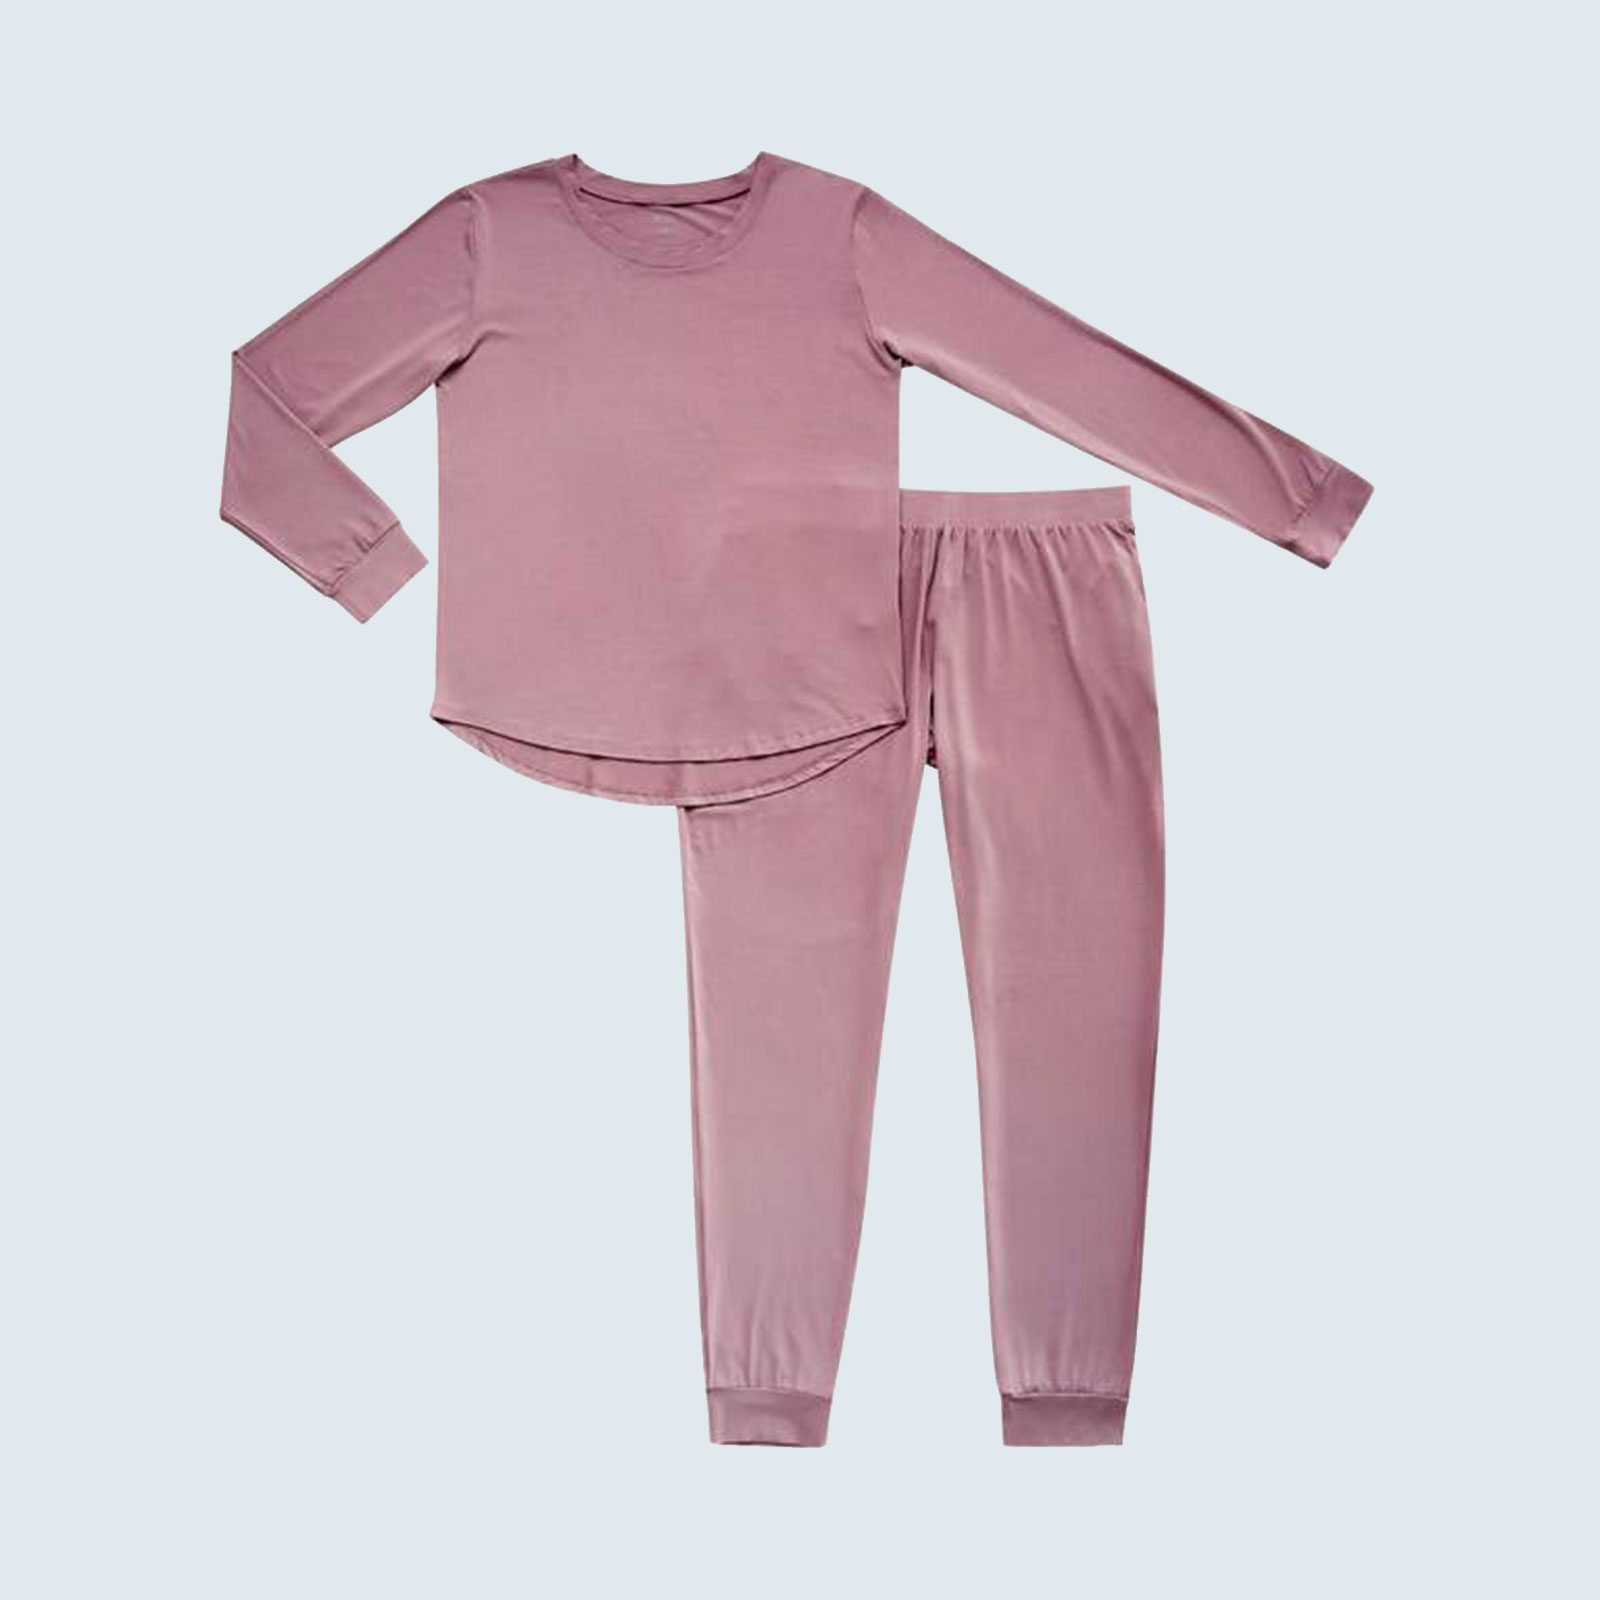 Jogger Pajama Set from Kyte Baby